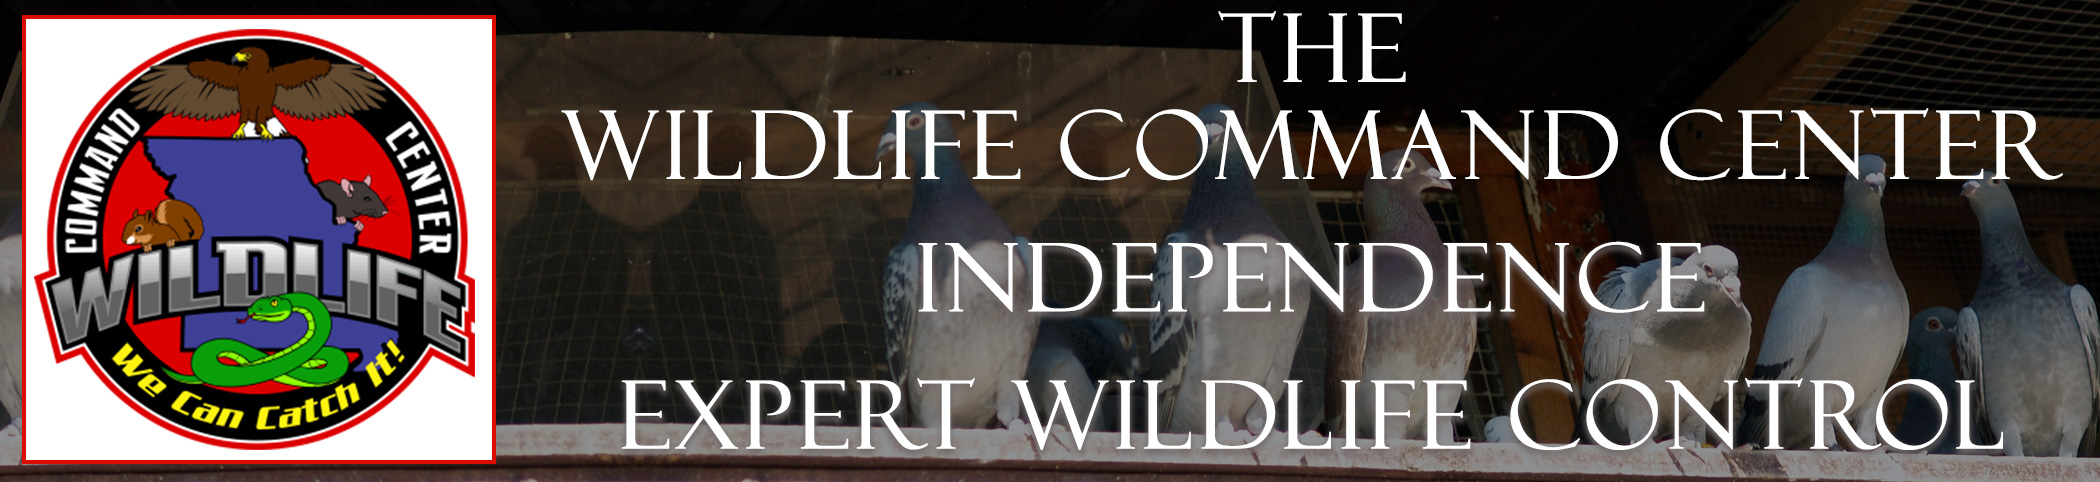 The Wildlife Command Center Independence Missouri Image